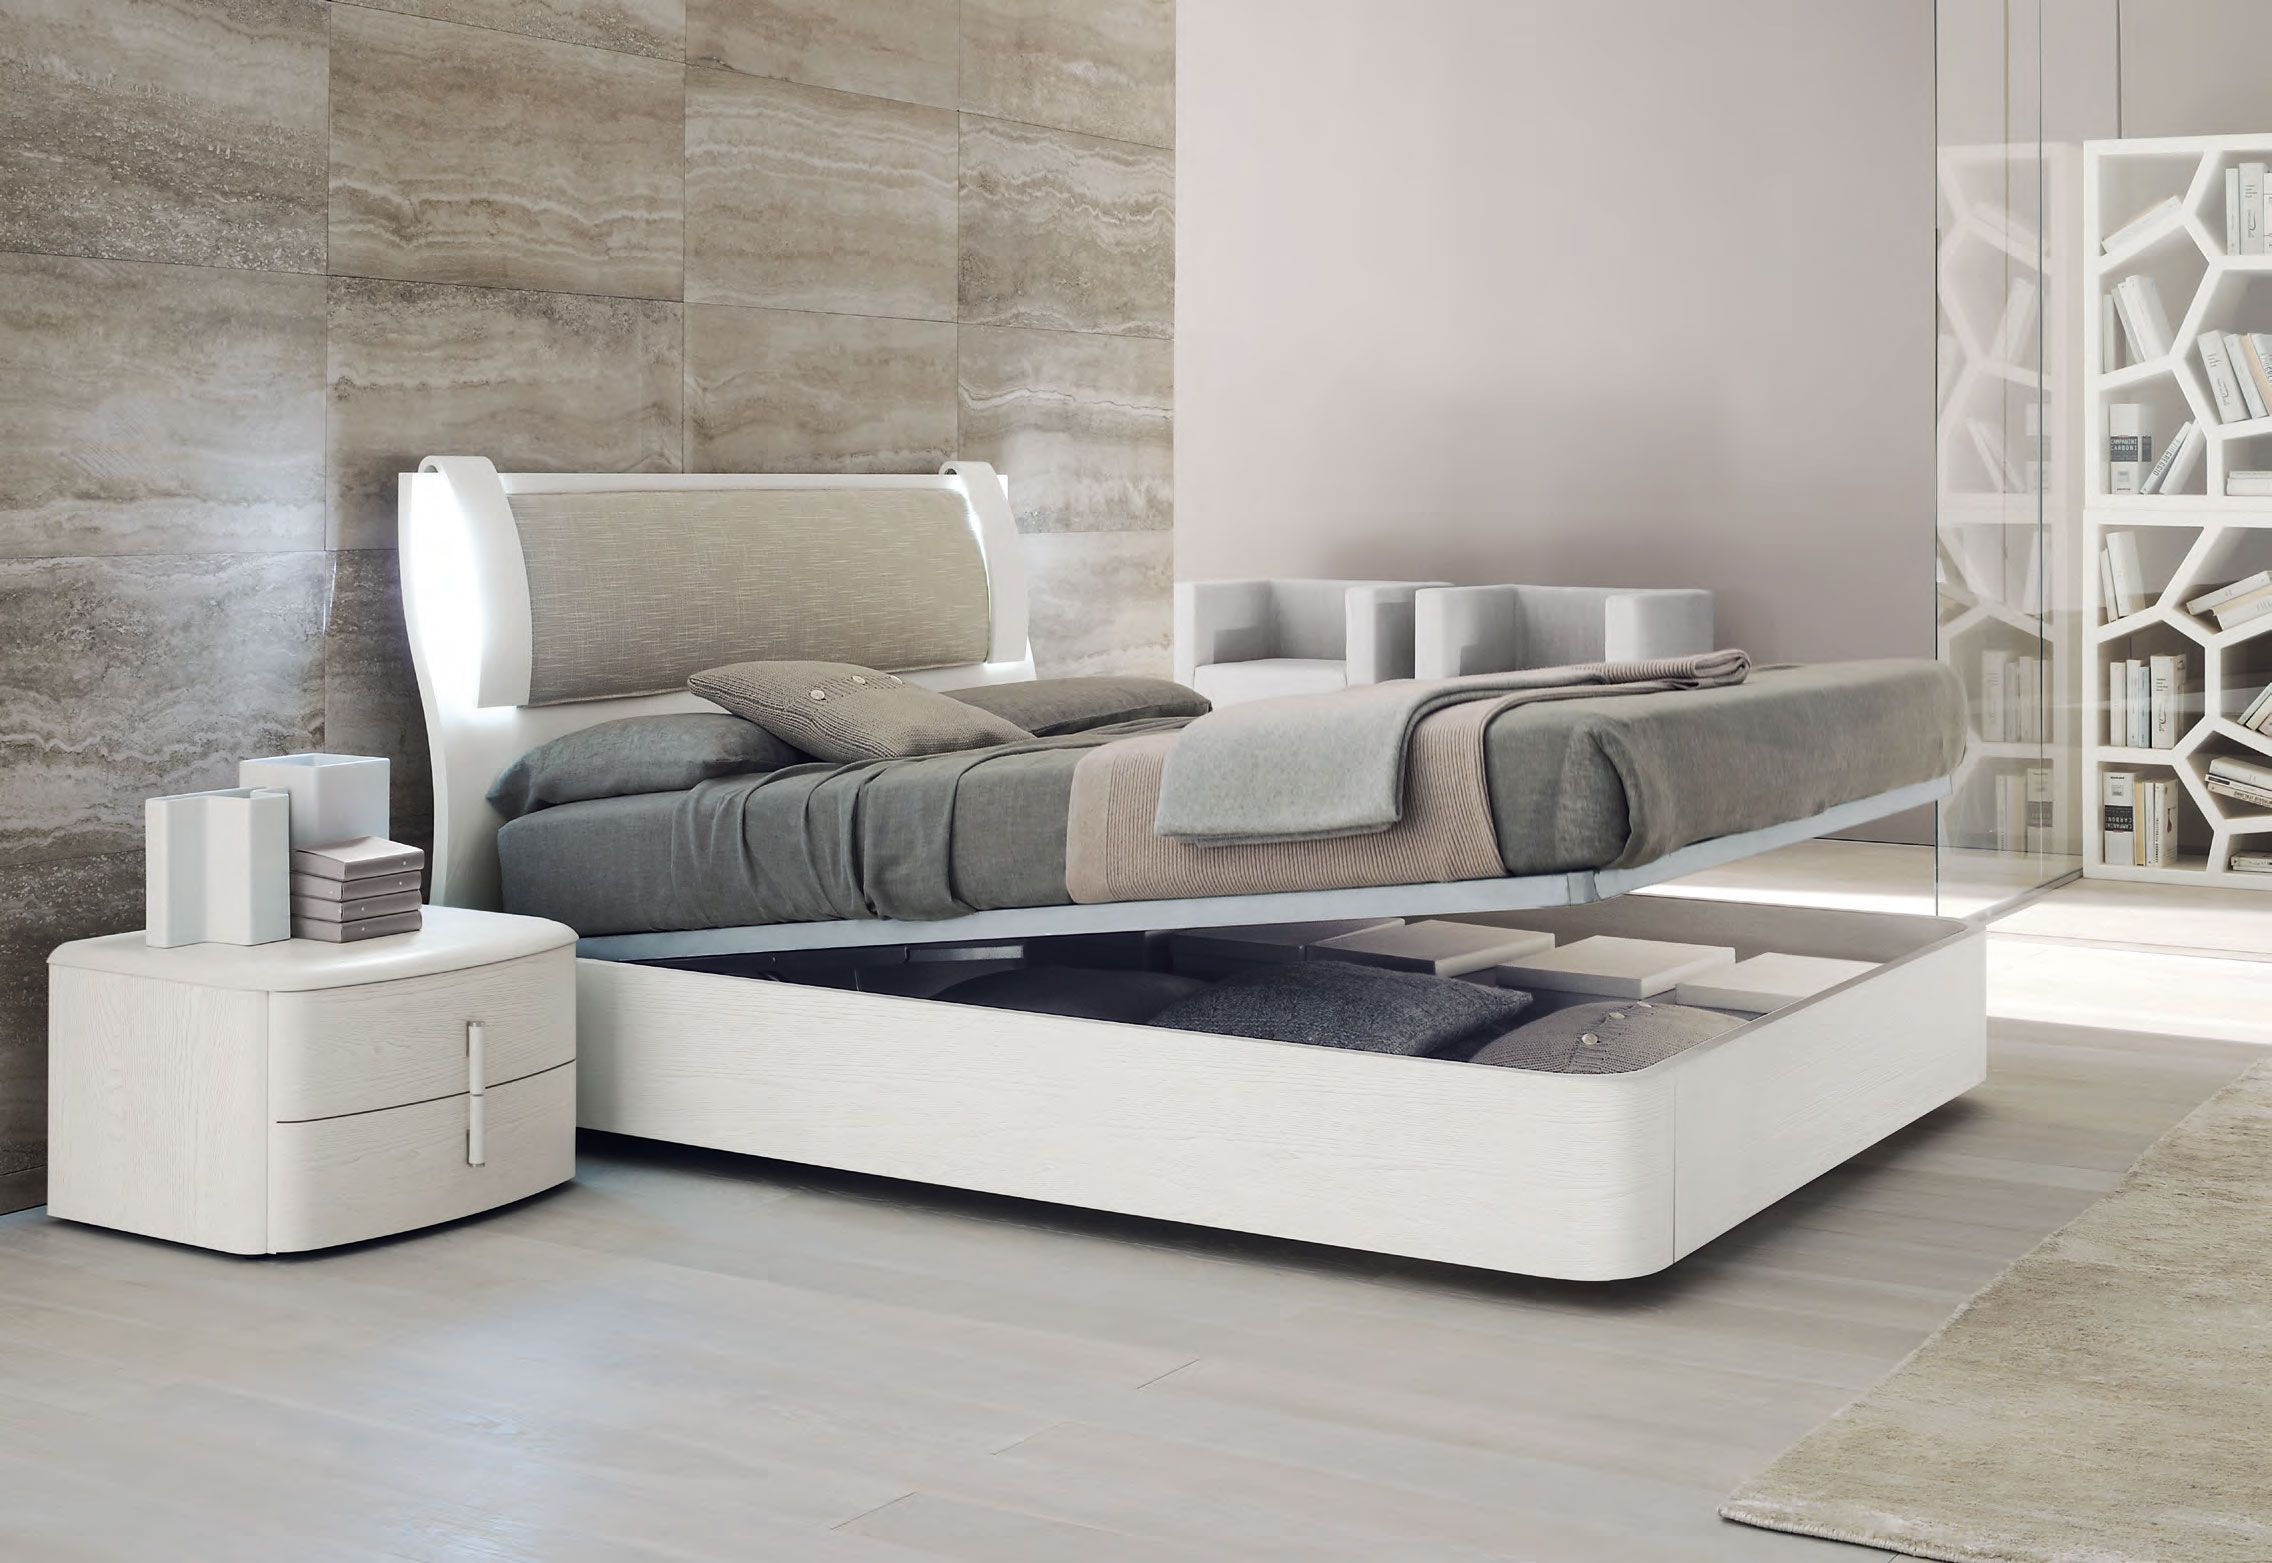 modern bedroom with white reclinig bed furnished with gray cover